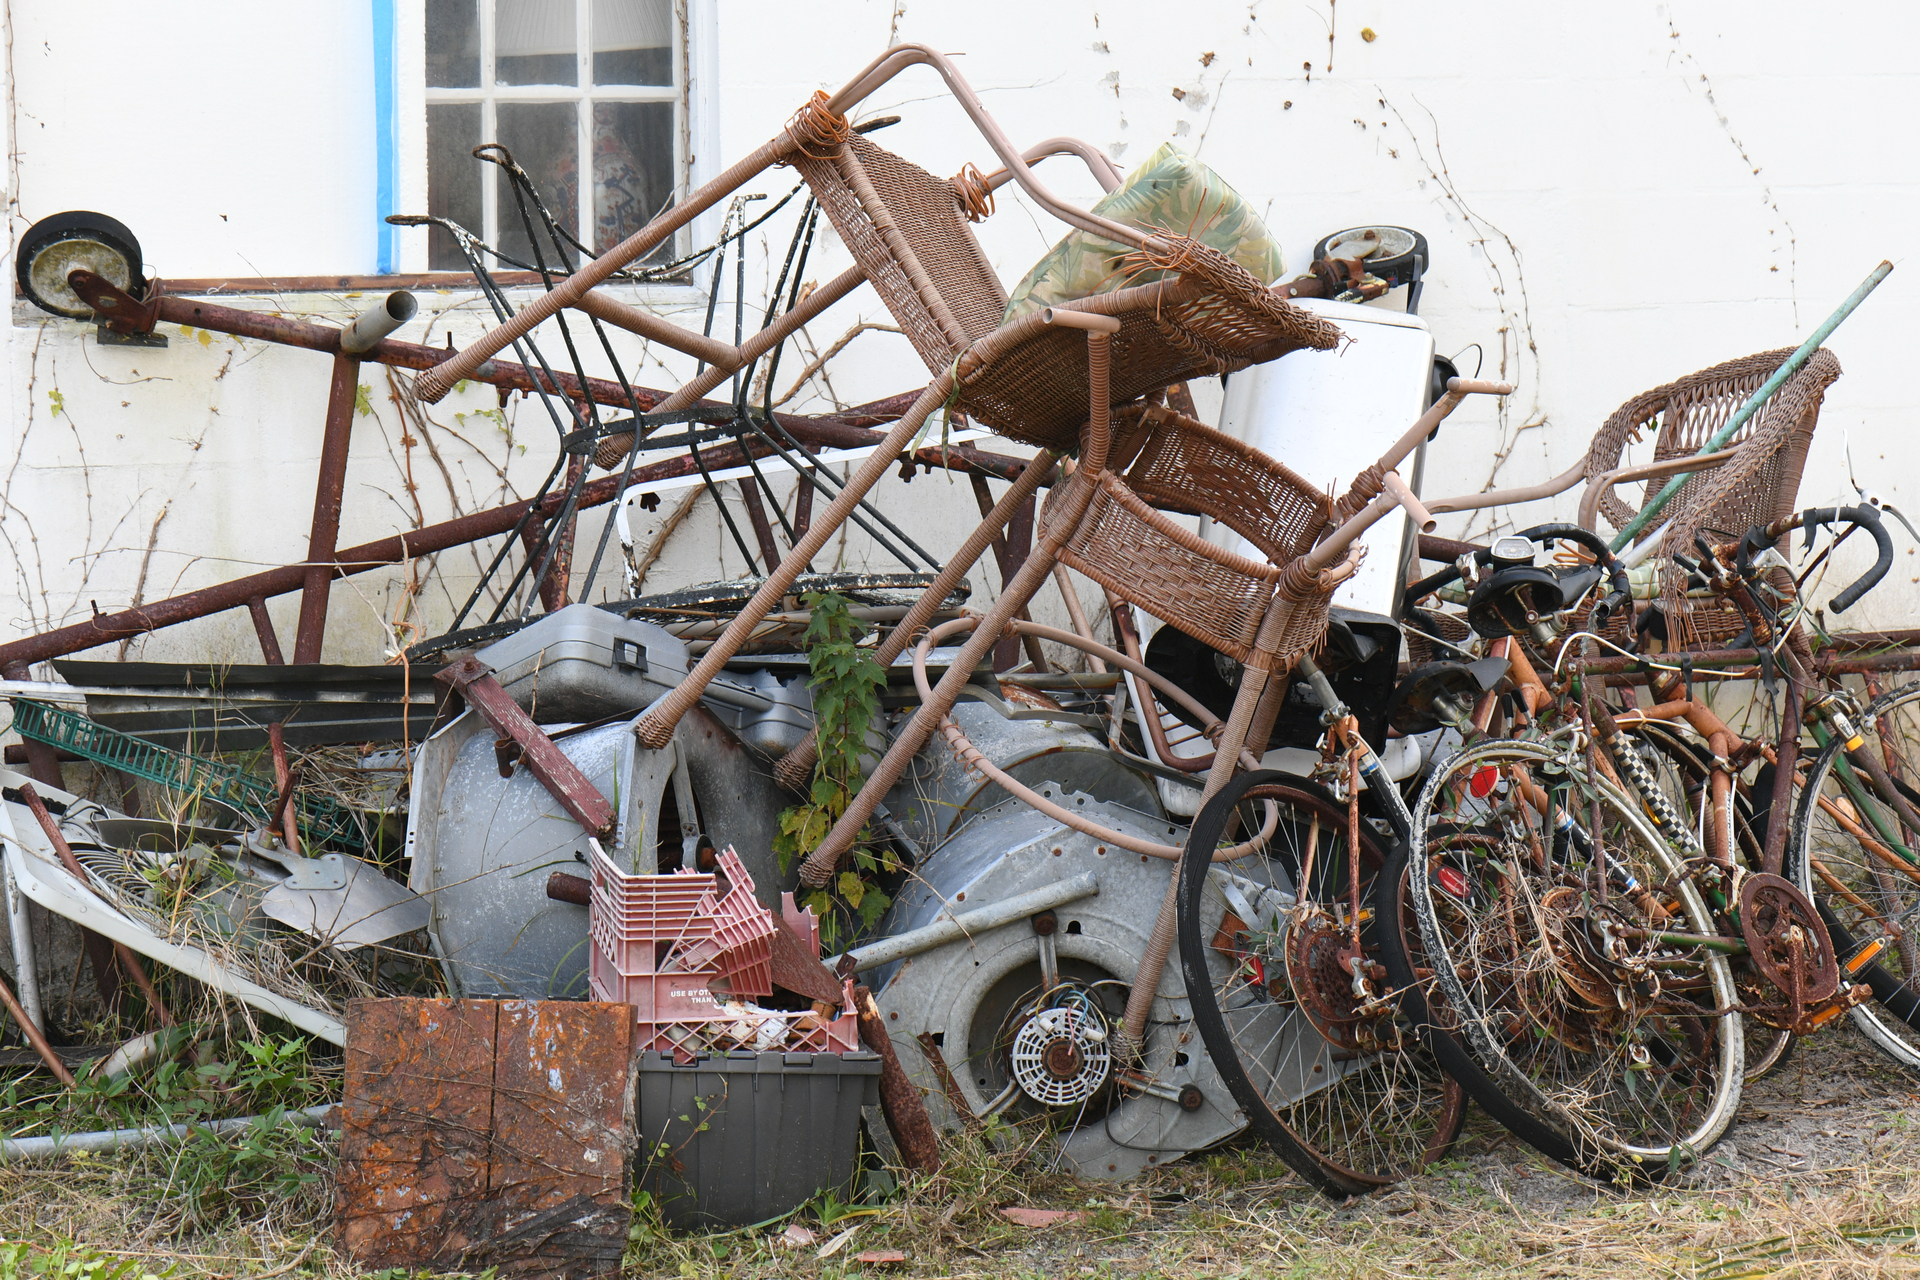 Junk Piled Up Next To The House That Needs Removal